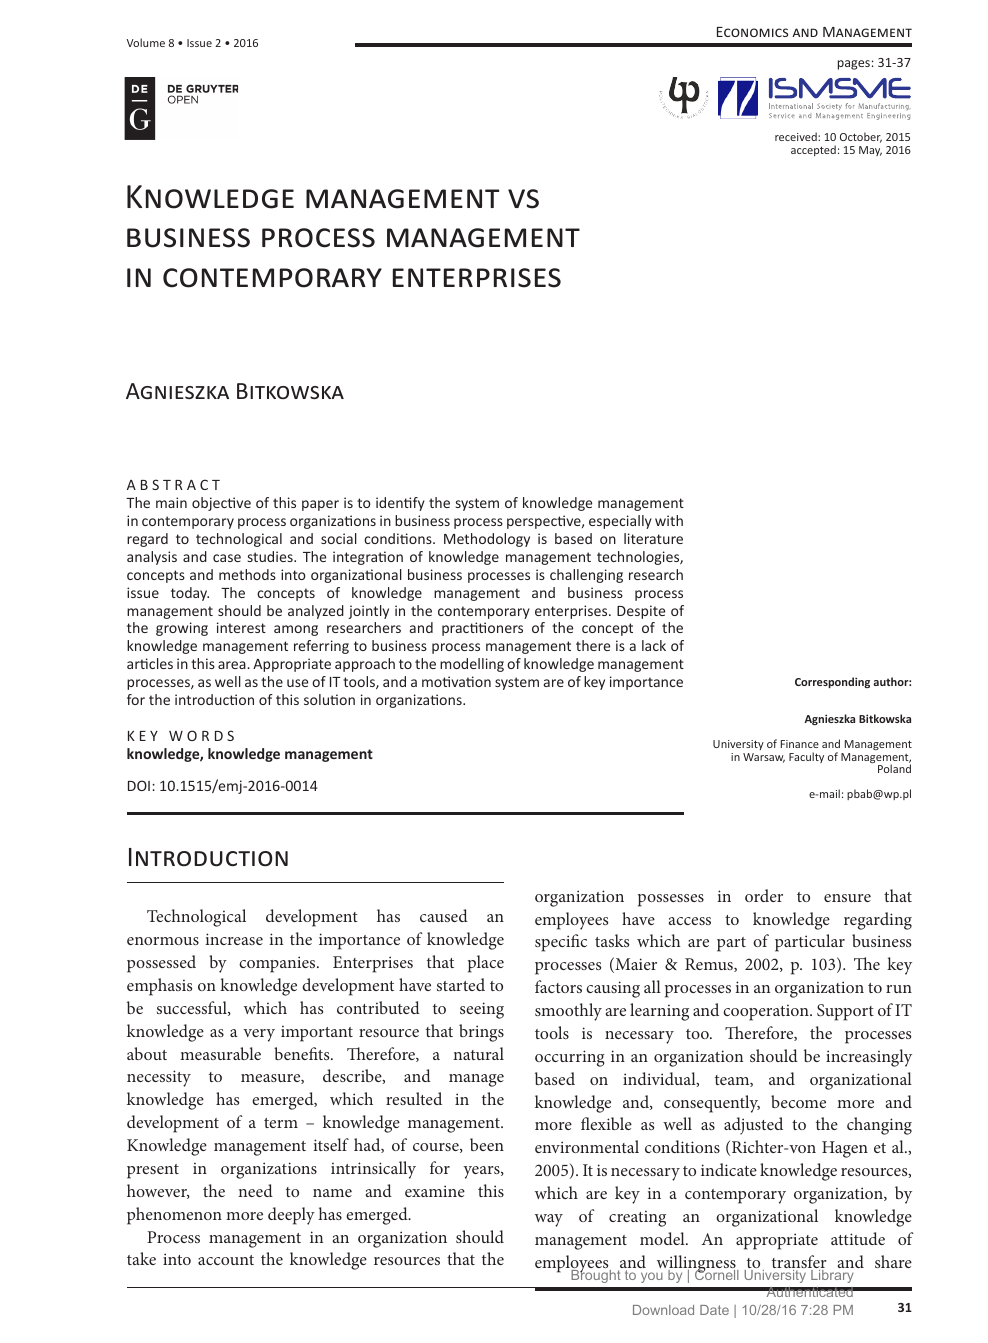 018 Business Management Research Paper Topics Singular Pdf For Techniques Full